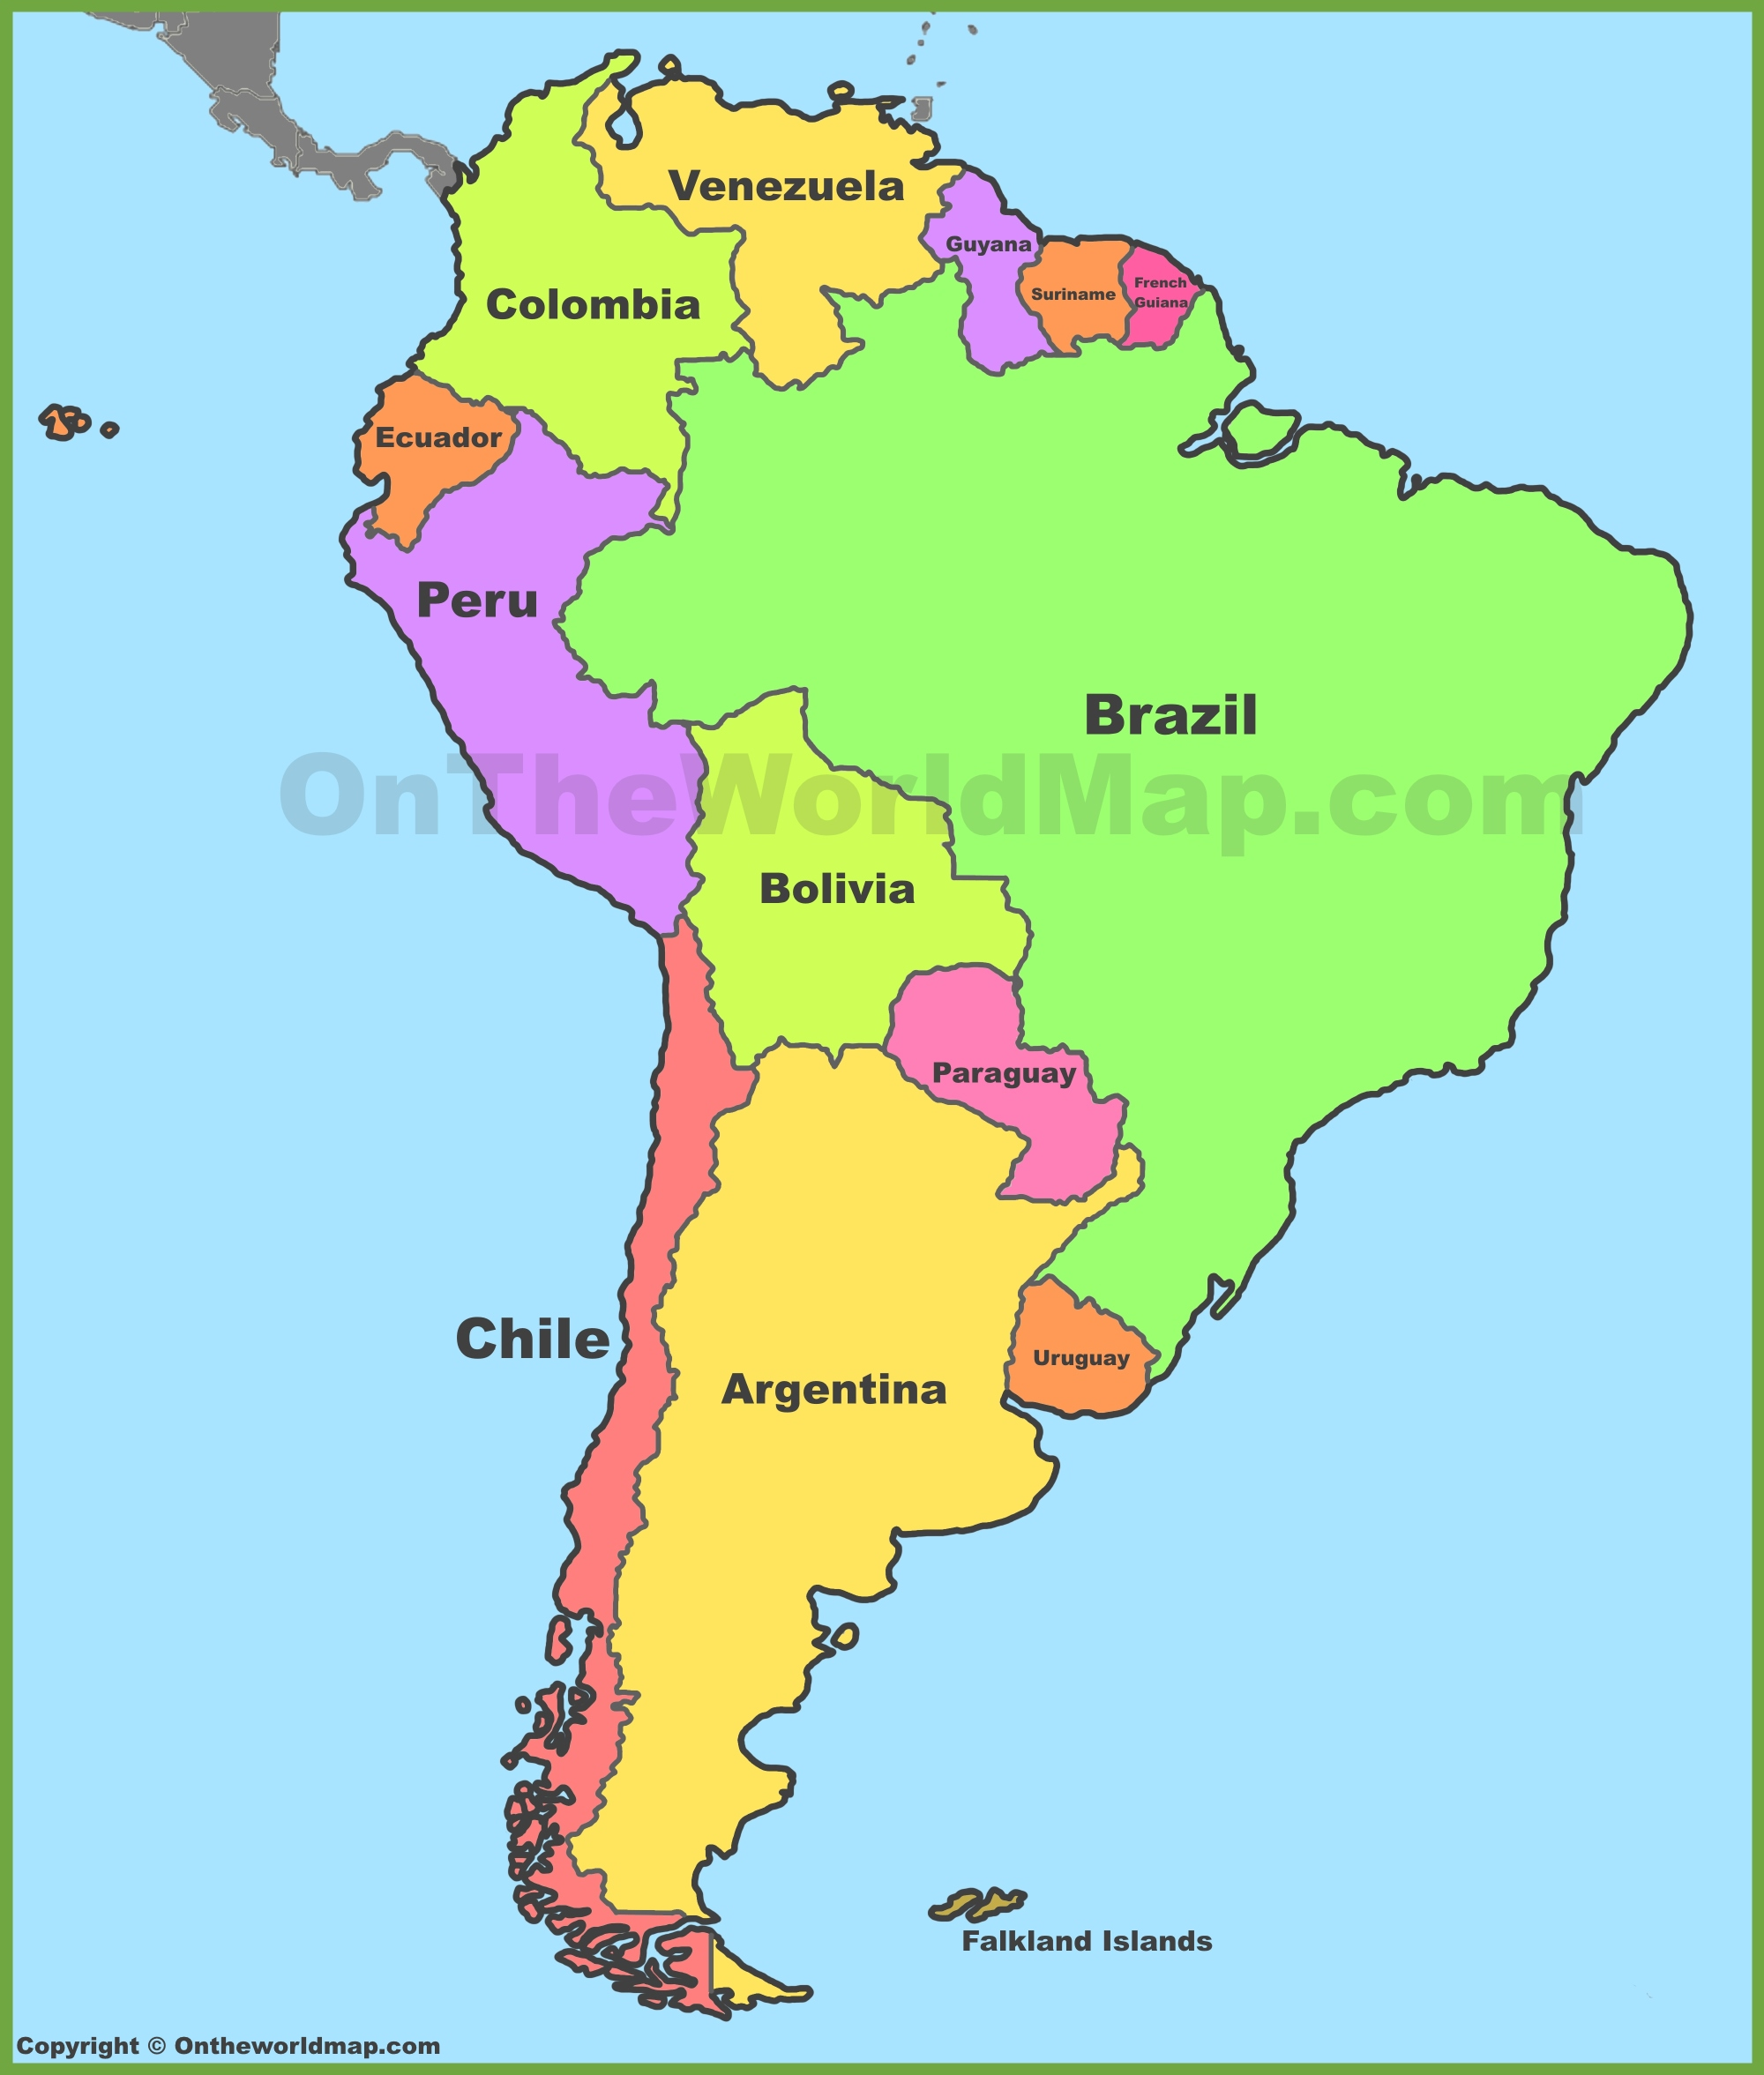 South America Maps Maps Of South America OnTheWorldMapcom - S america map